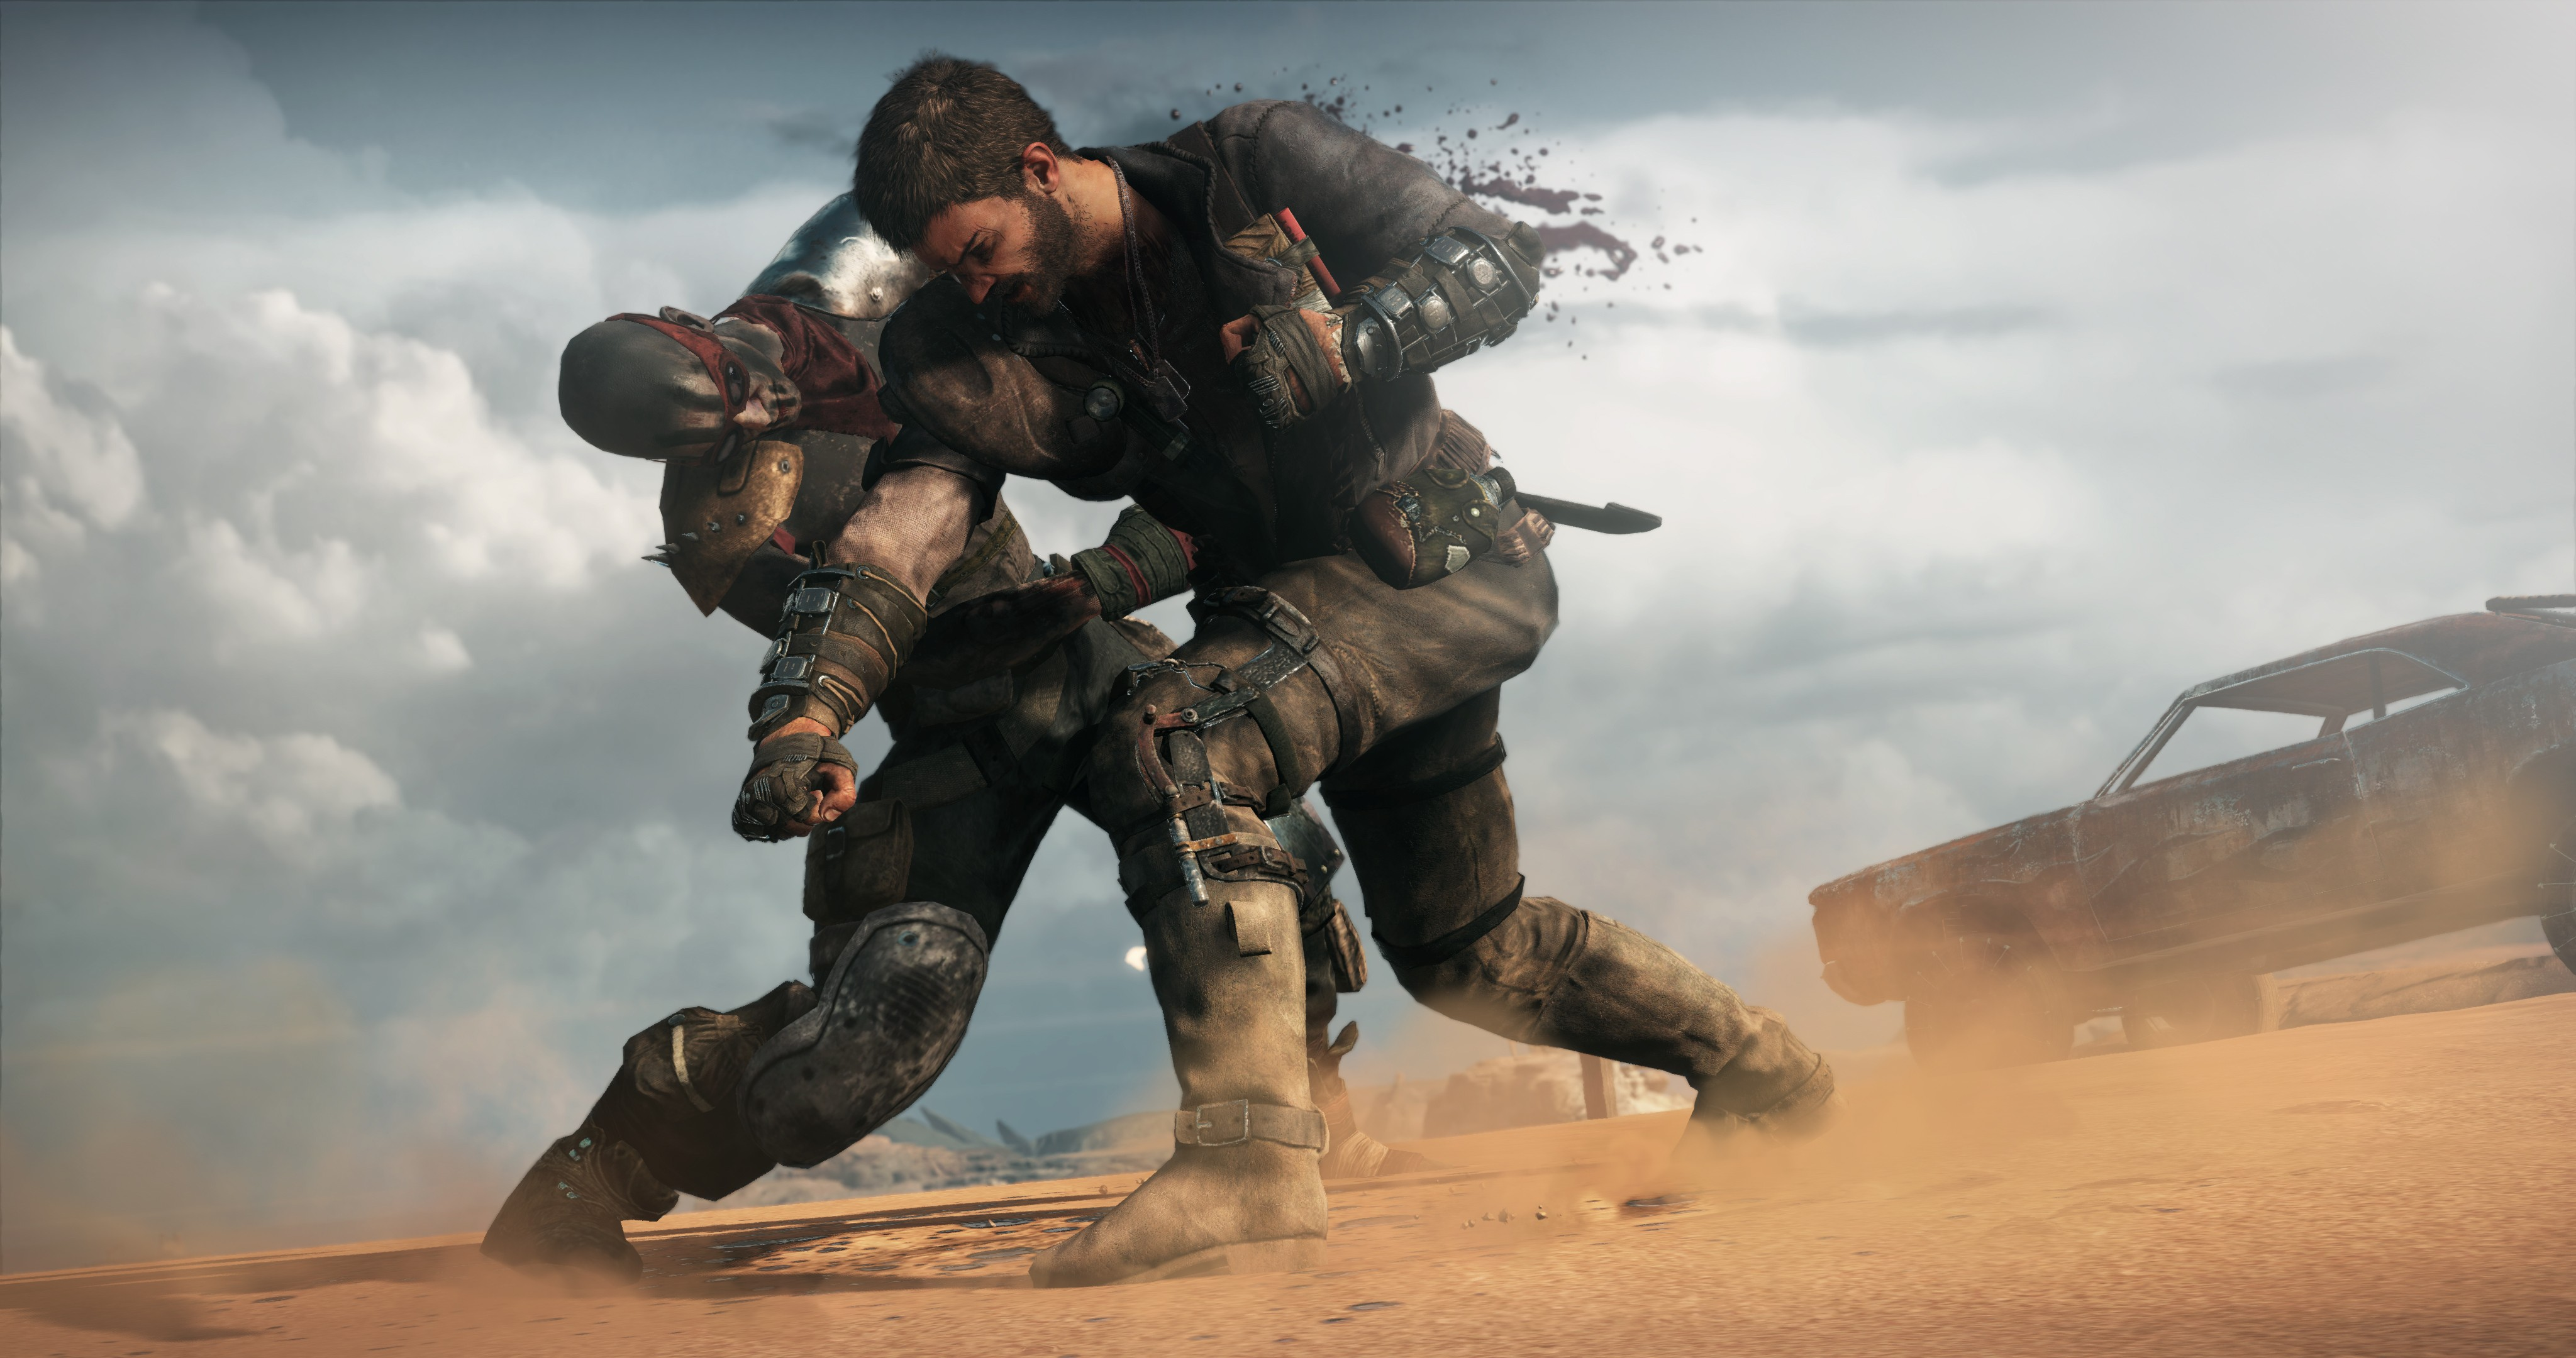 Fight Against Others In Mad Max